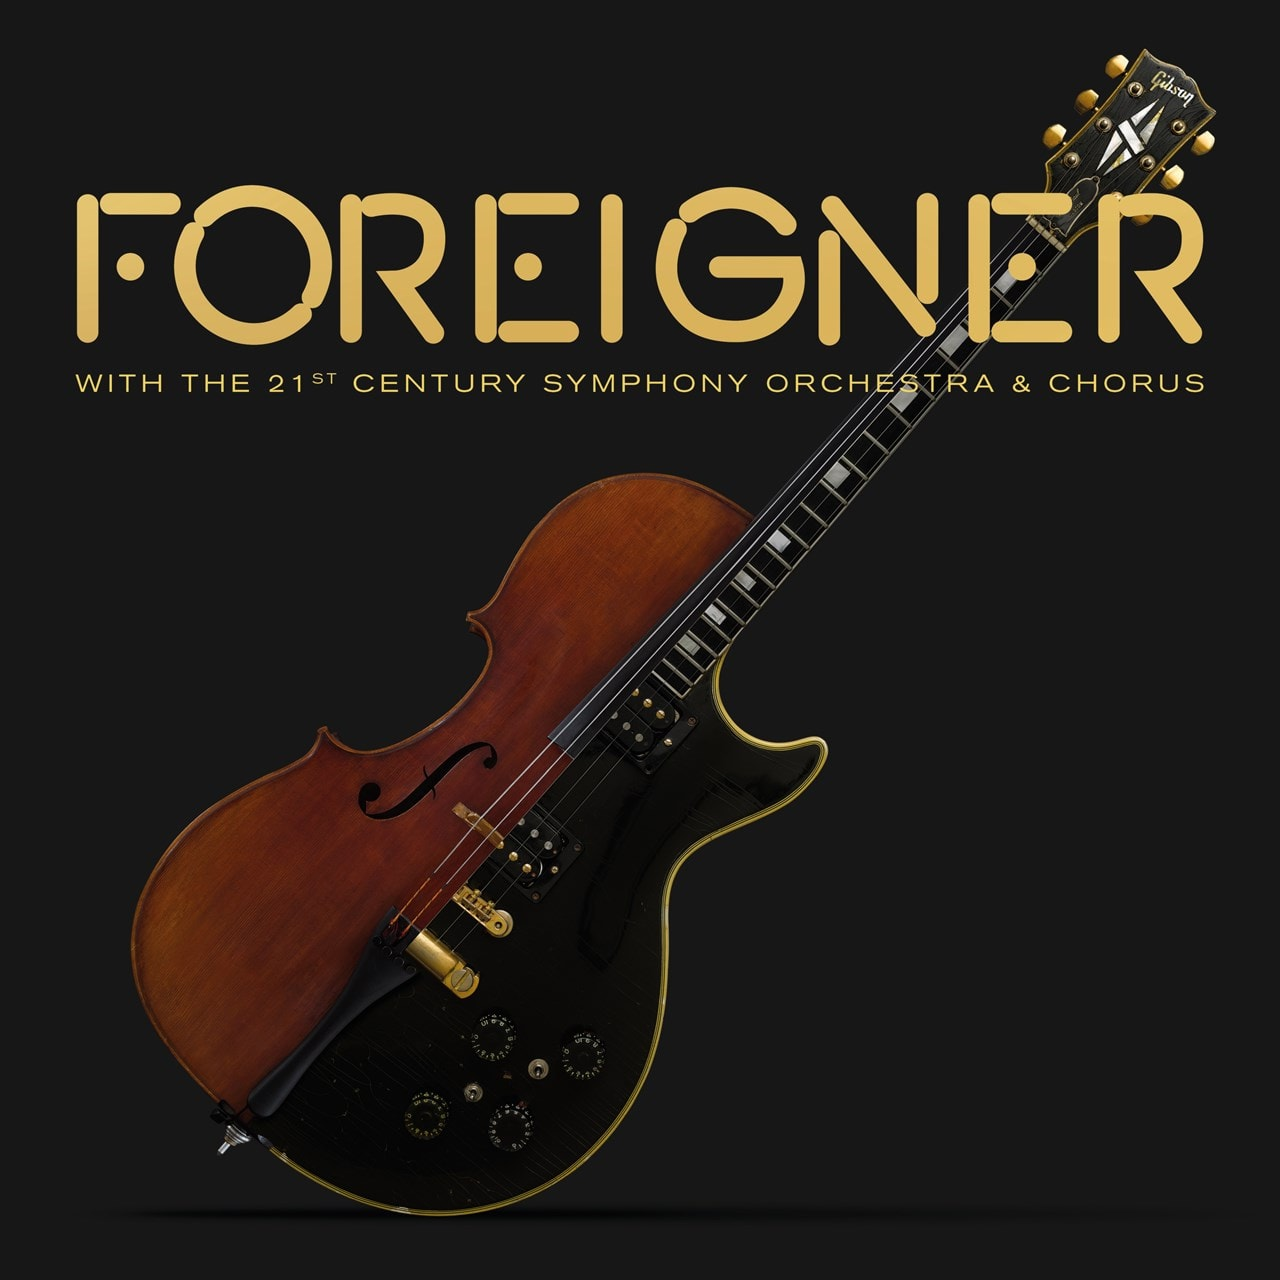 Foreigner With the 21st Century Symphony Orchestra and Chorus - 1